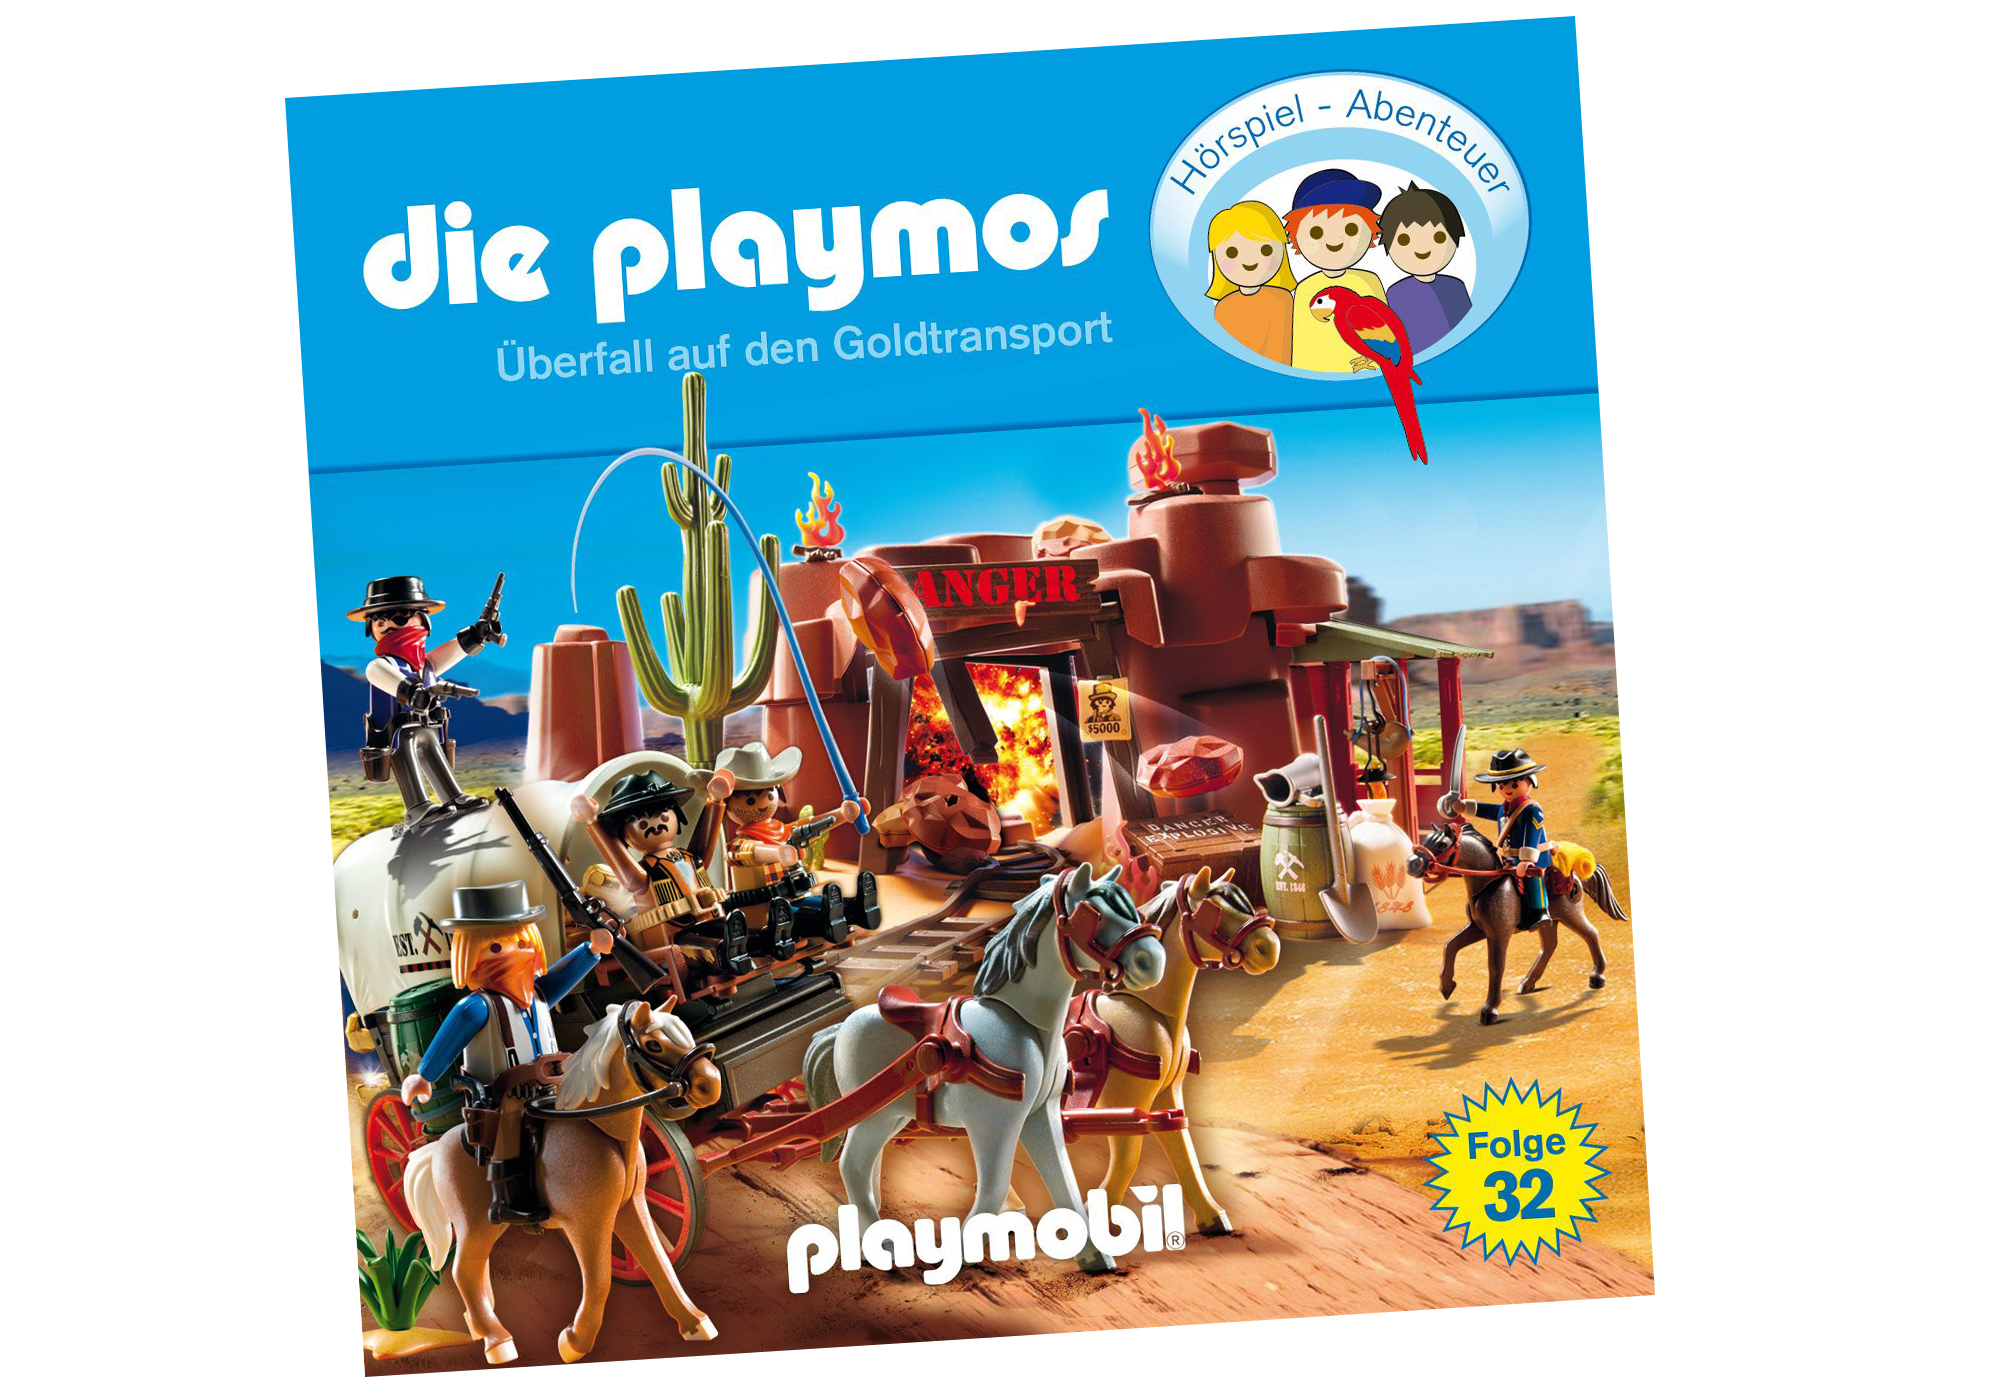 http://media.playmobil.com/i/playmobil/80351_product_detail